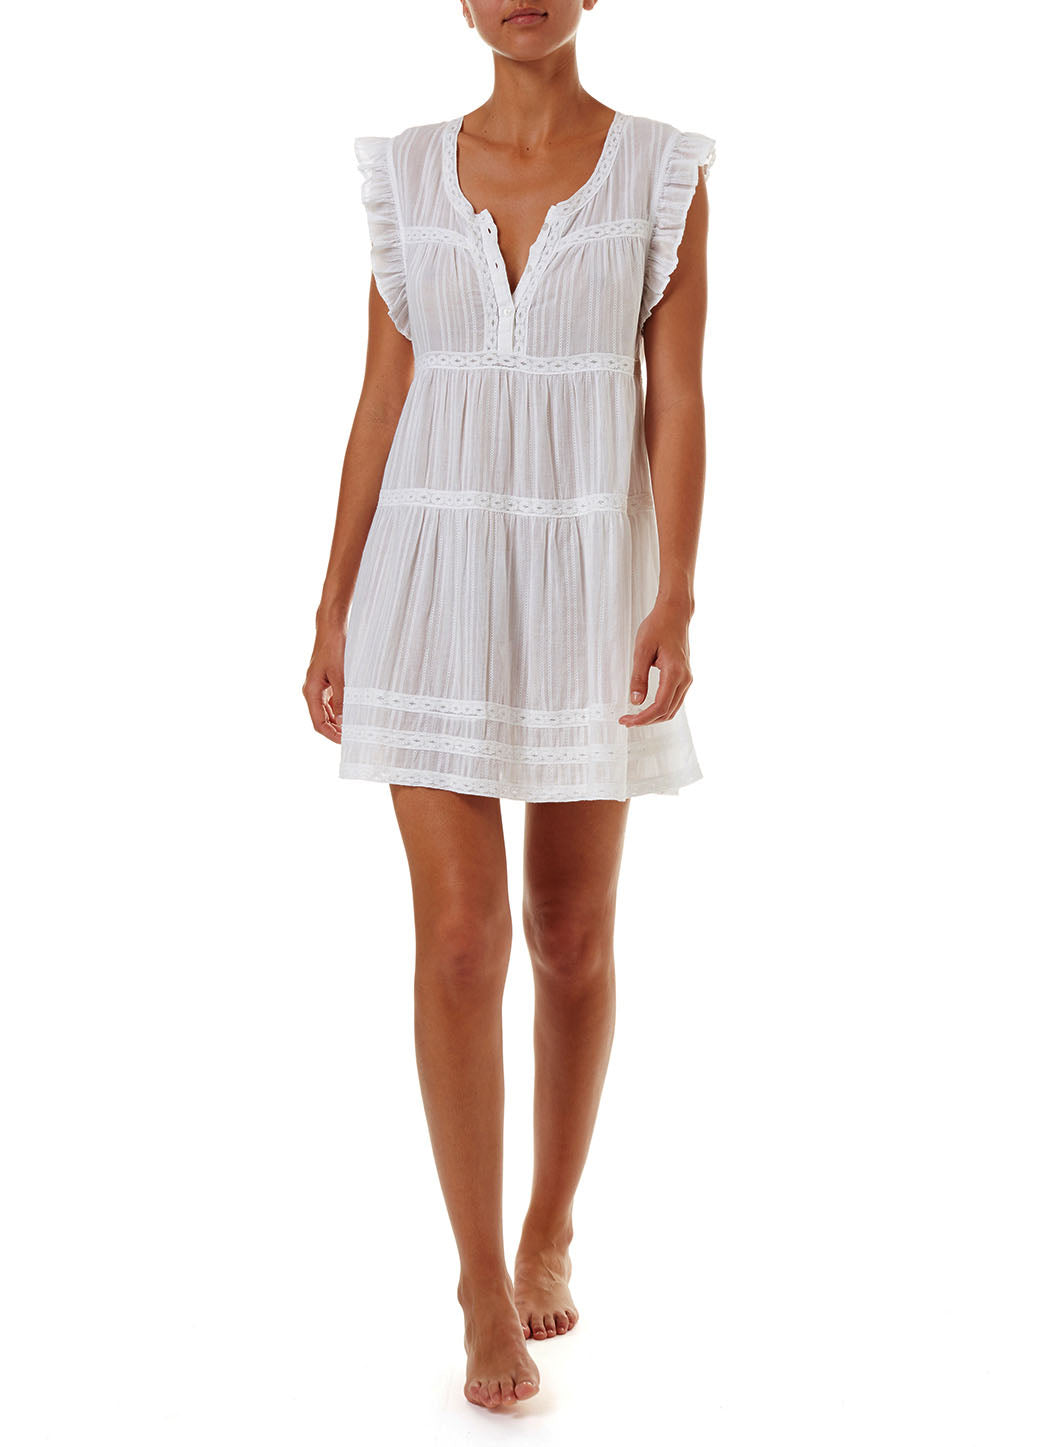 Rebekah White Button-Front Short Dress